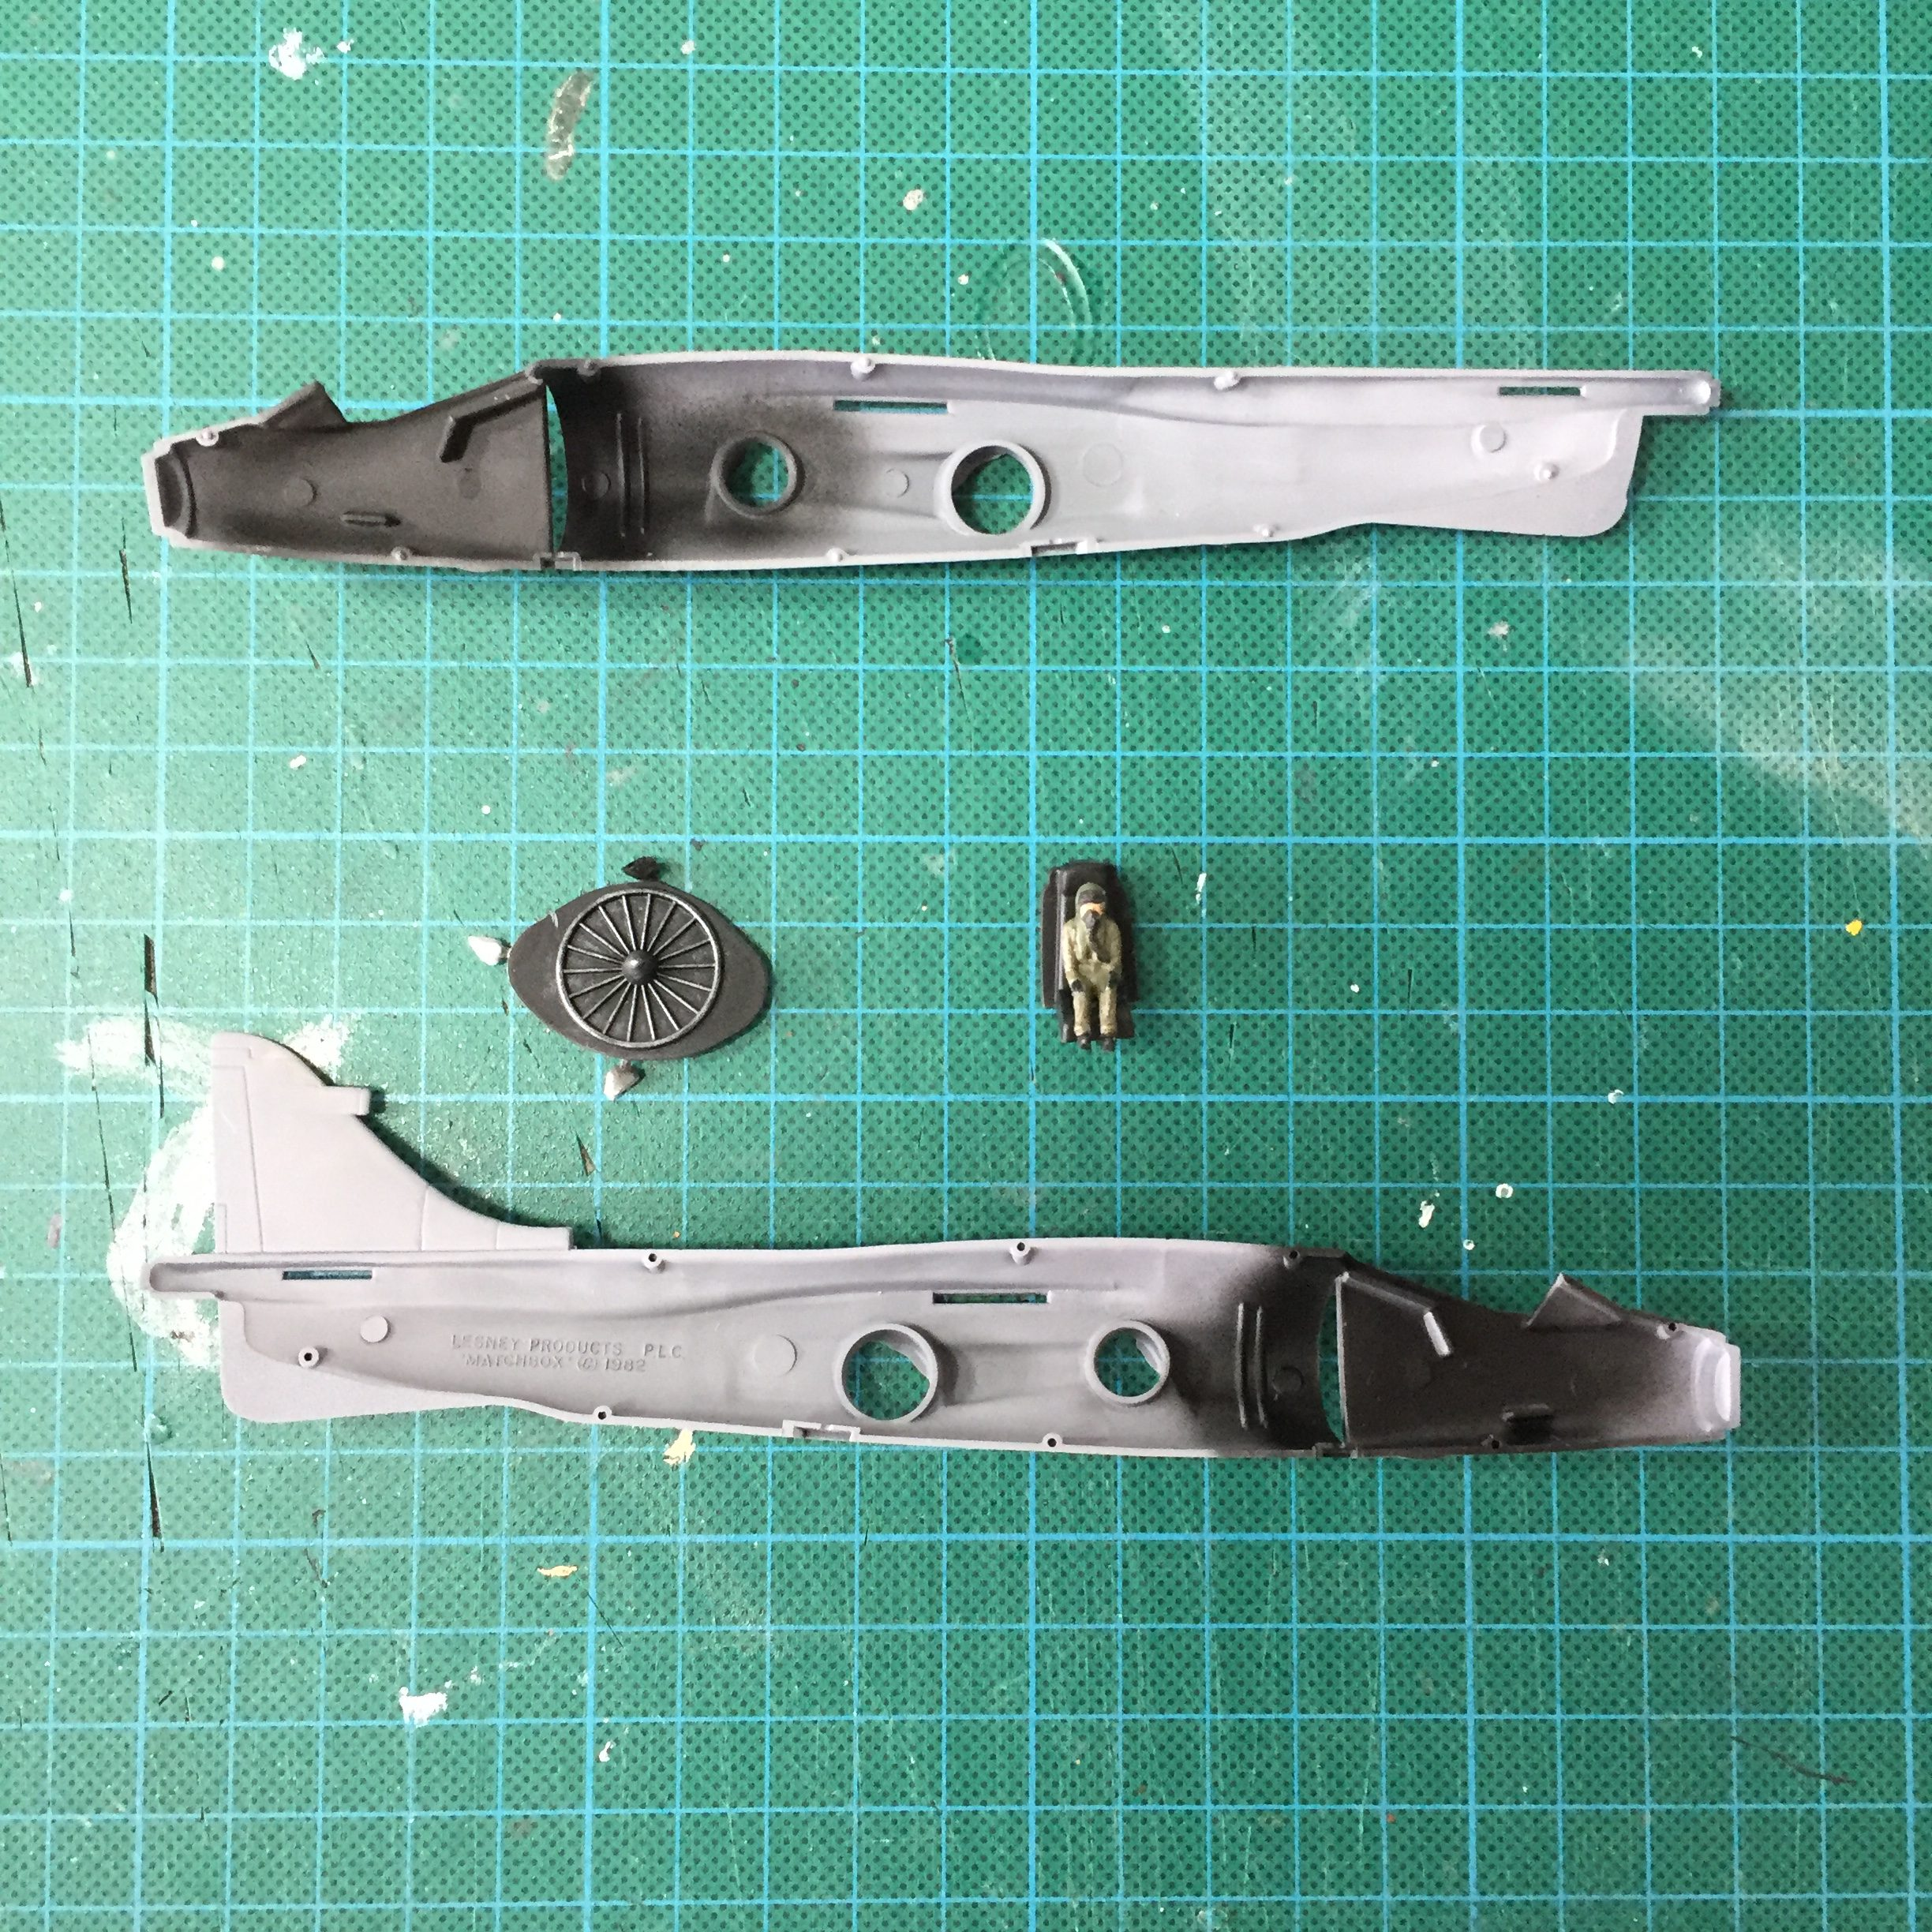 Work in progress on the Matchbox 1/72 Sea Harrier.